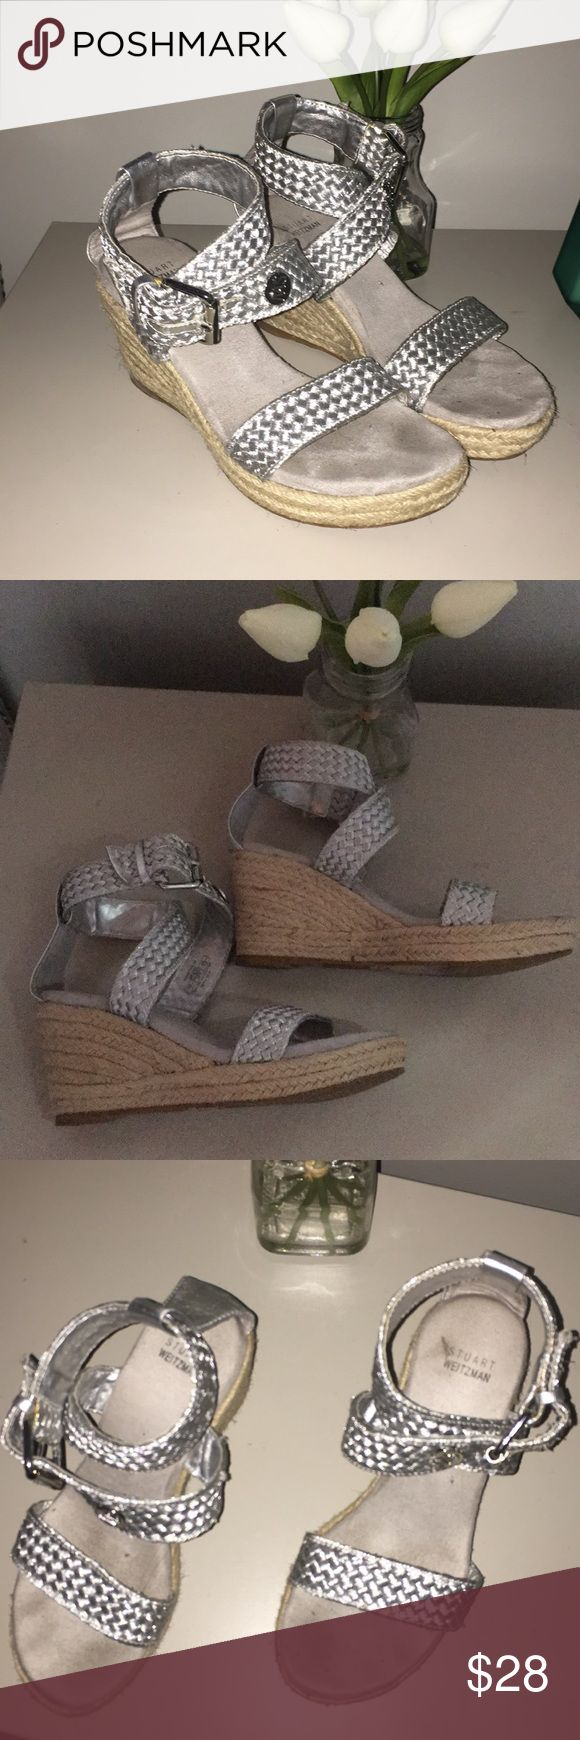 Stuart Weitzman Silver Espadrilles Silver Espadrilles. Very good condition. Worn once to the beach. They are size 2 girls but fit me . I'm a size 4.5-5 ( I have thin feet) Extremely comfortable. Need some cleaning. Stuart Weitzman Shoes Espadrilles